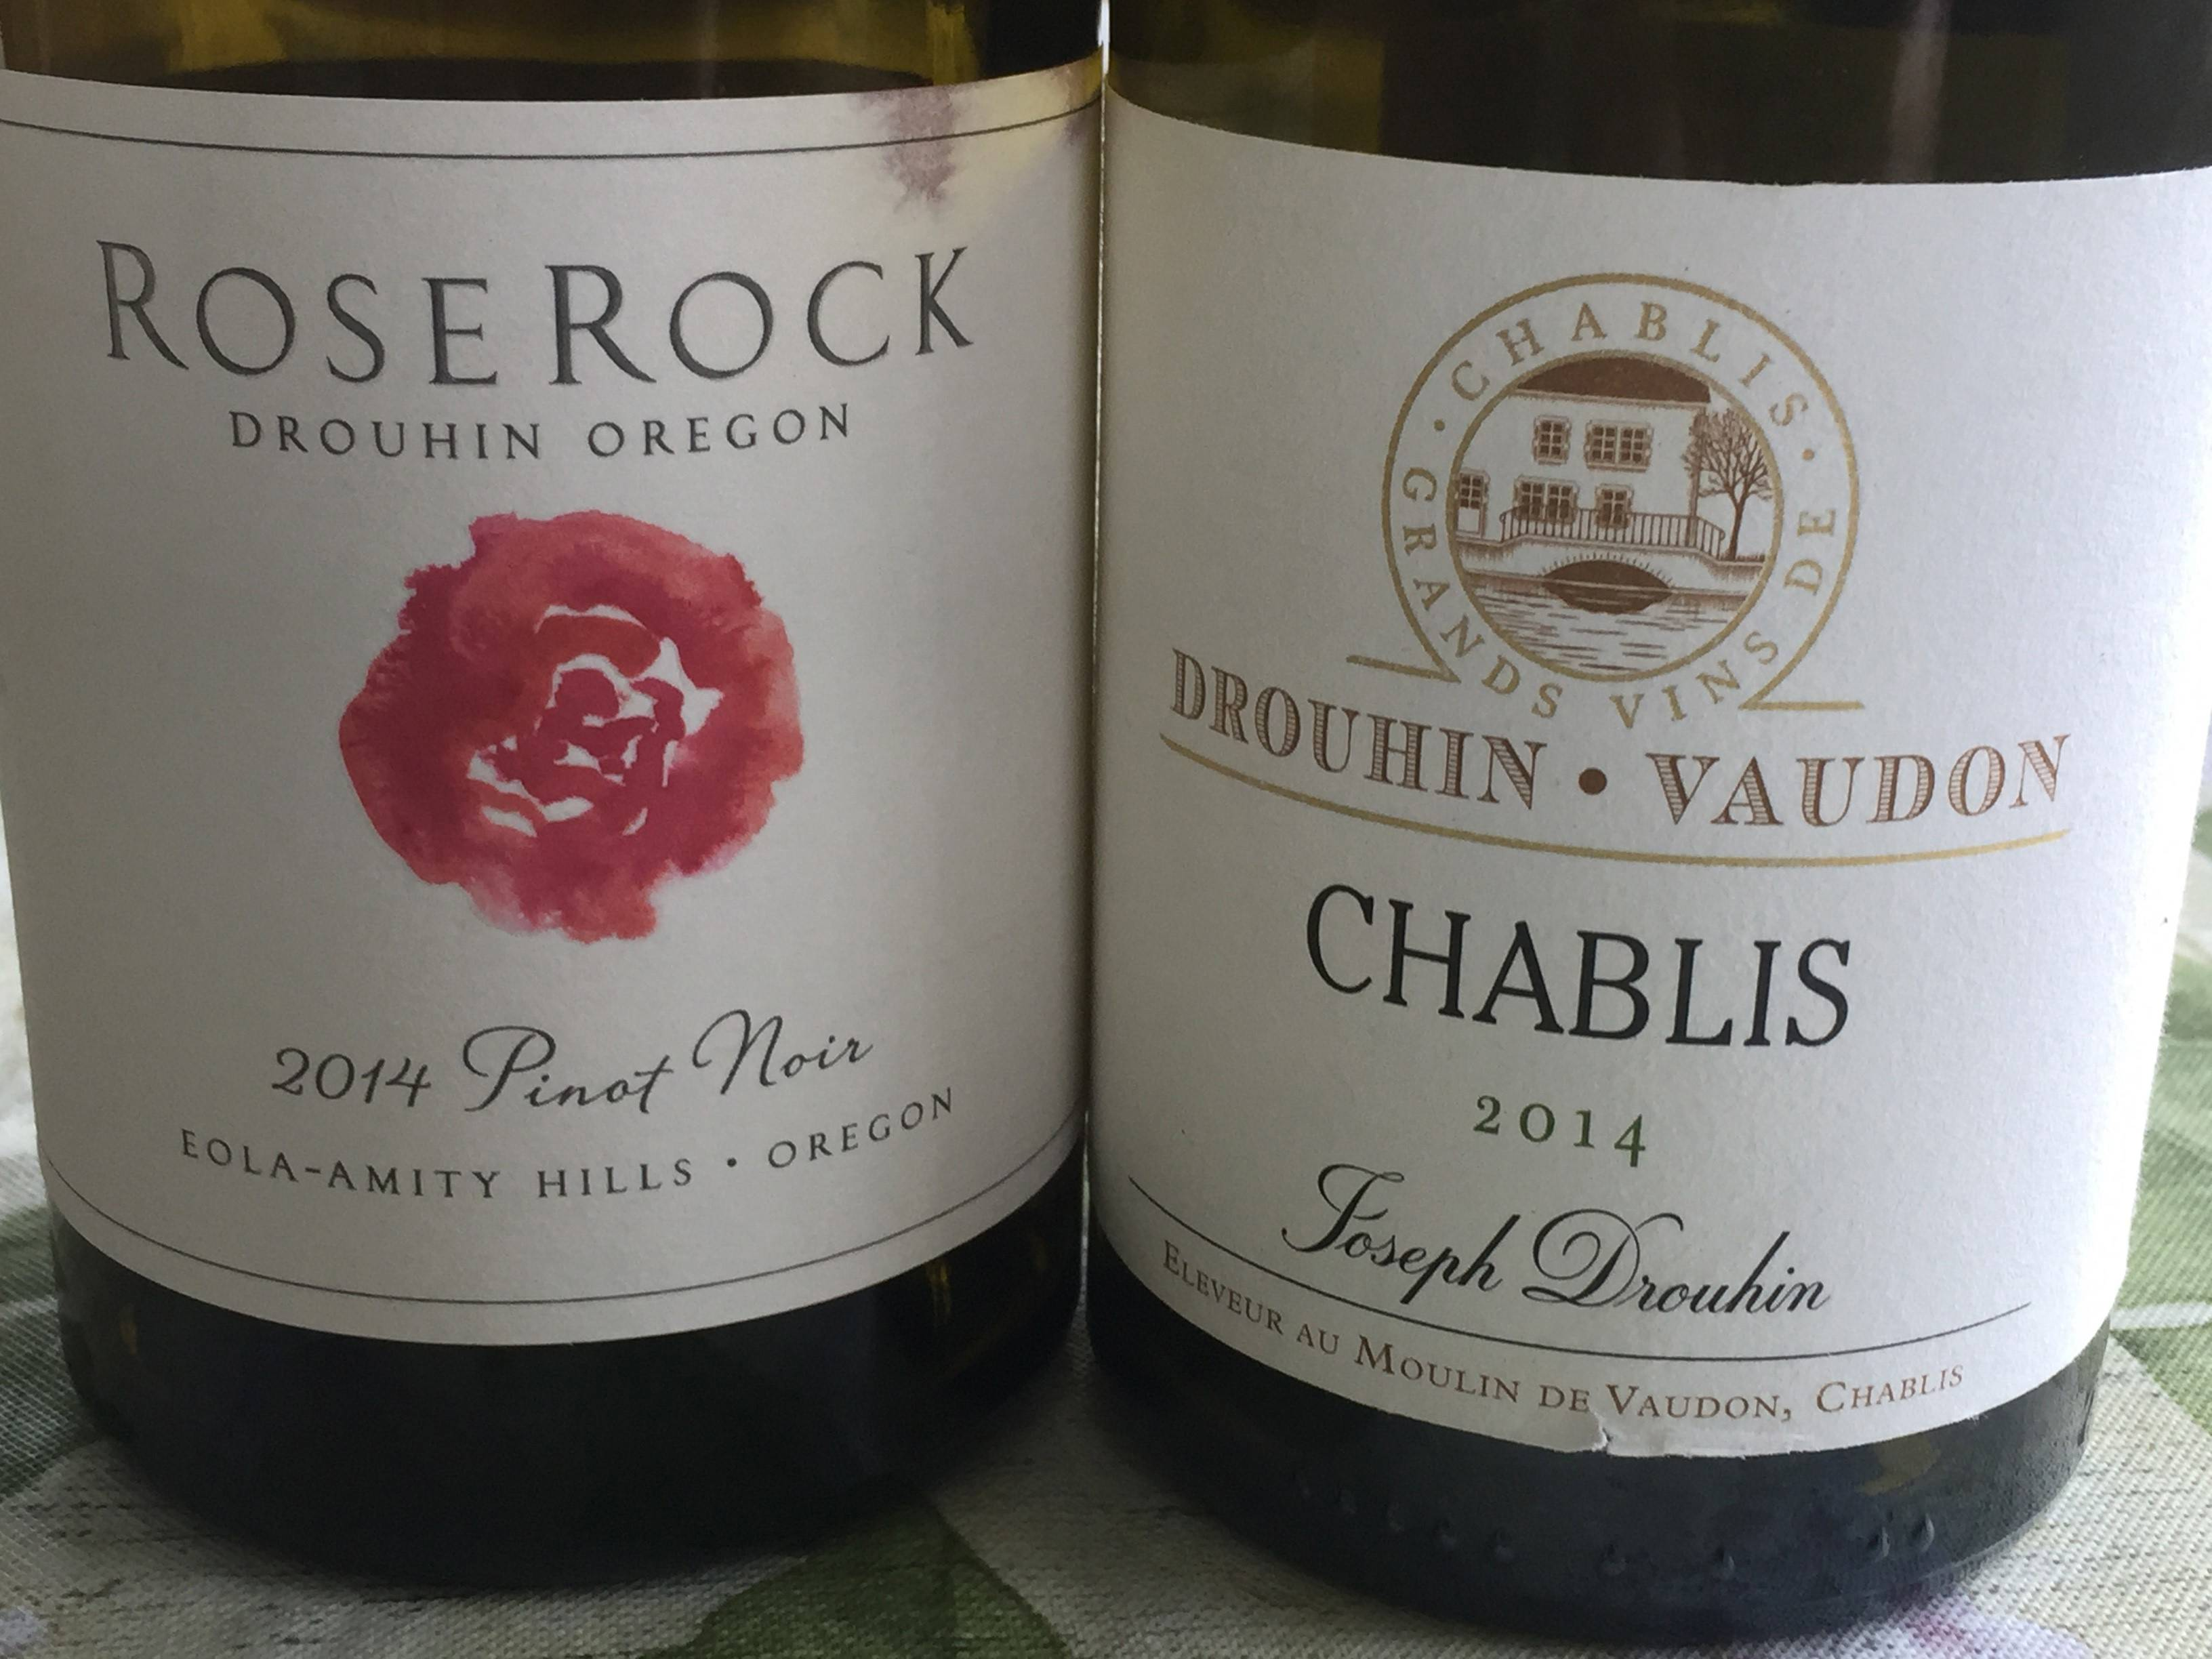 Two wines by the Drouhin family — one made in France, the other in Oregon — provide a tasty lesson in how to evaluate wines.